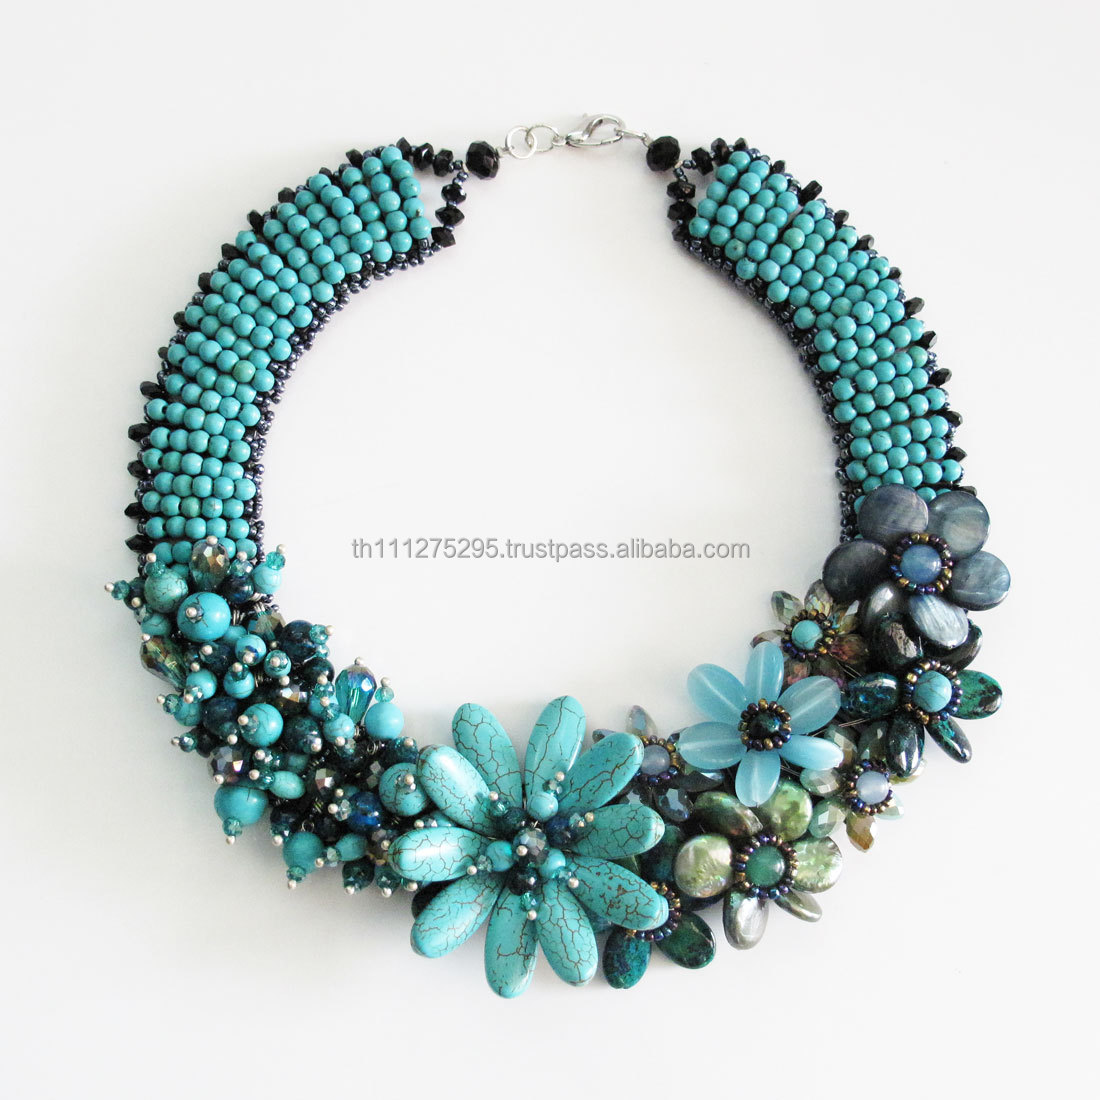 Turquoise and Howlite Flower Stone Necklace Statement necklace, Flower necklace, Stone jewelry